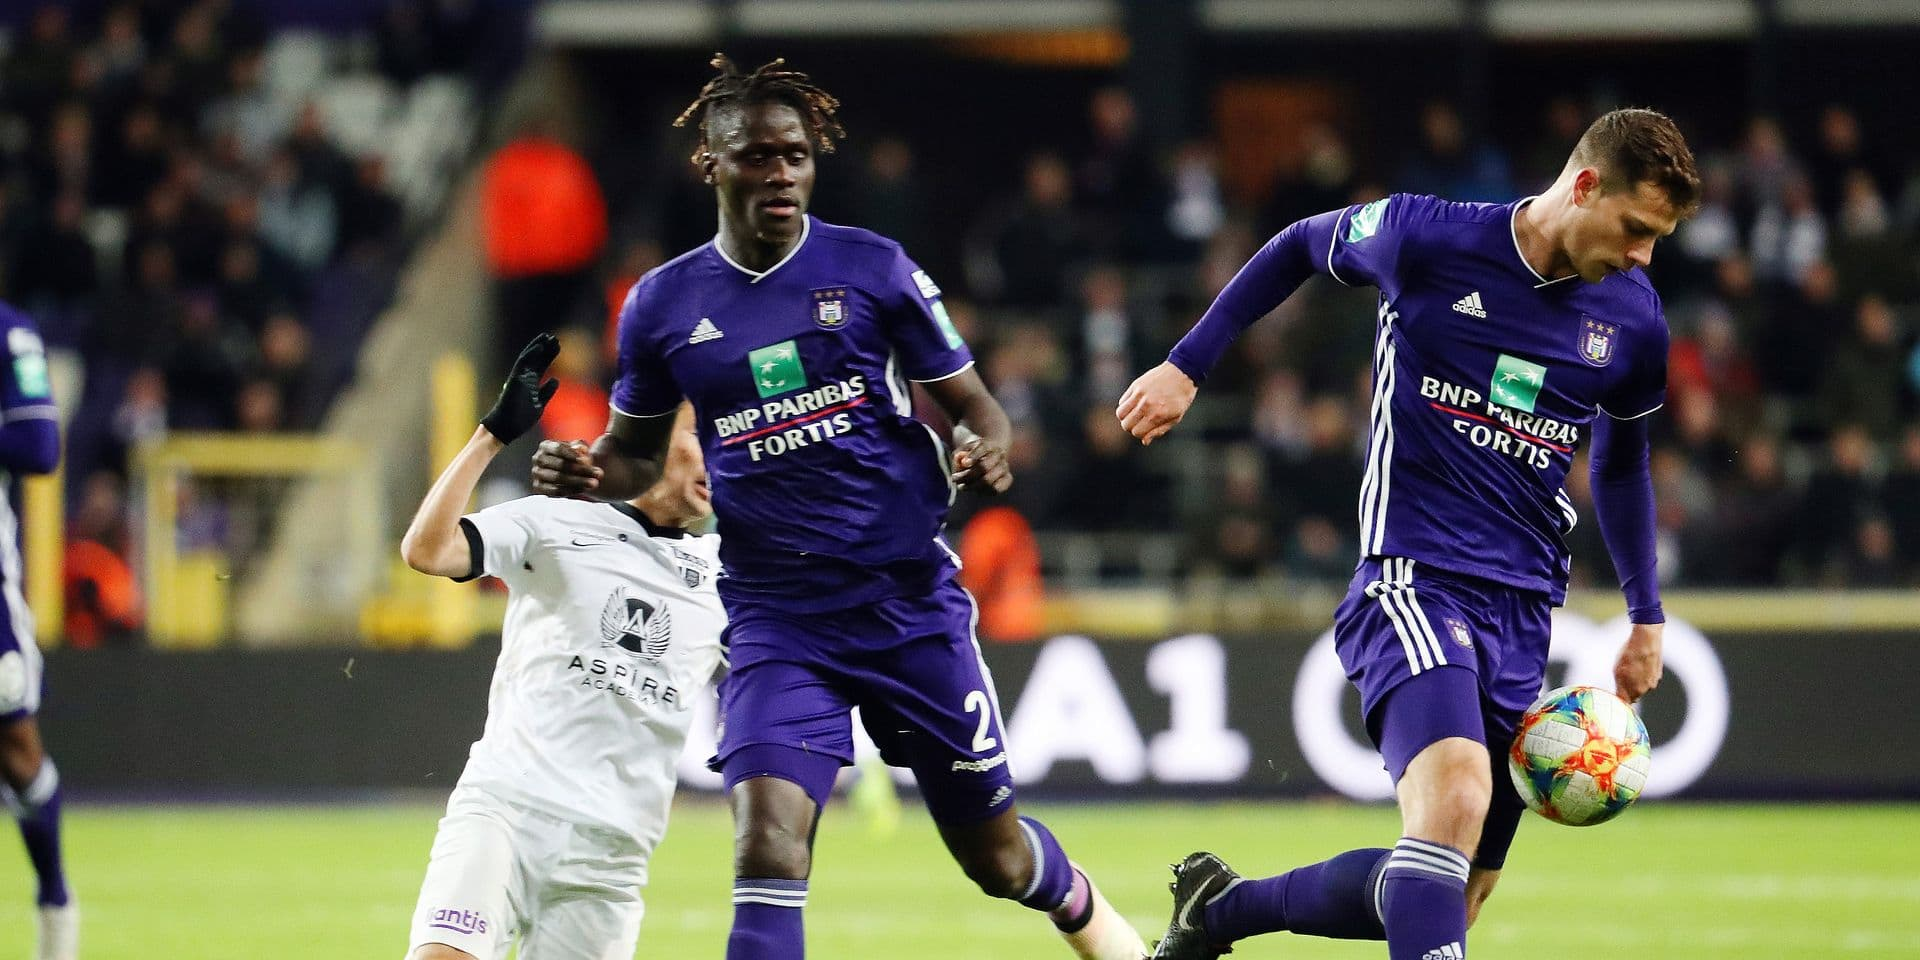 Eupen's Yuta Toyokawa, Anderlecht's Kara Mbodji and Anderlecht's James Lawrence fight for the ball during the soccer match between RSC Anderlecht and KAS Eupen, Sunday 27 January 2019 in Brussels, on the 23rd day of the 'Jupiler Pro League' Belgian soccer championship season 2018-2019. BELGA PHOTO VIRGINIE LEFOUR